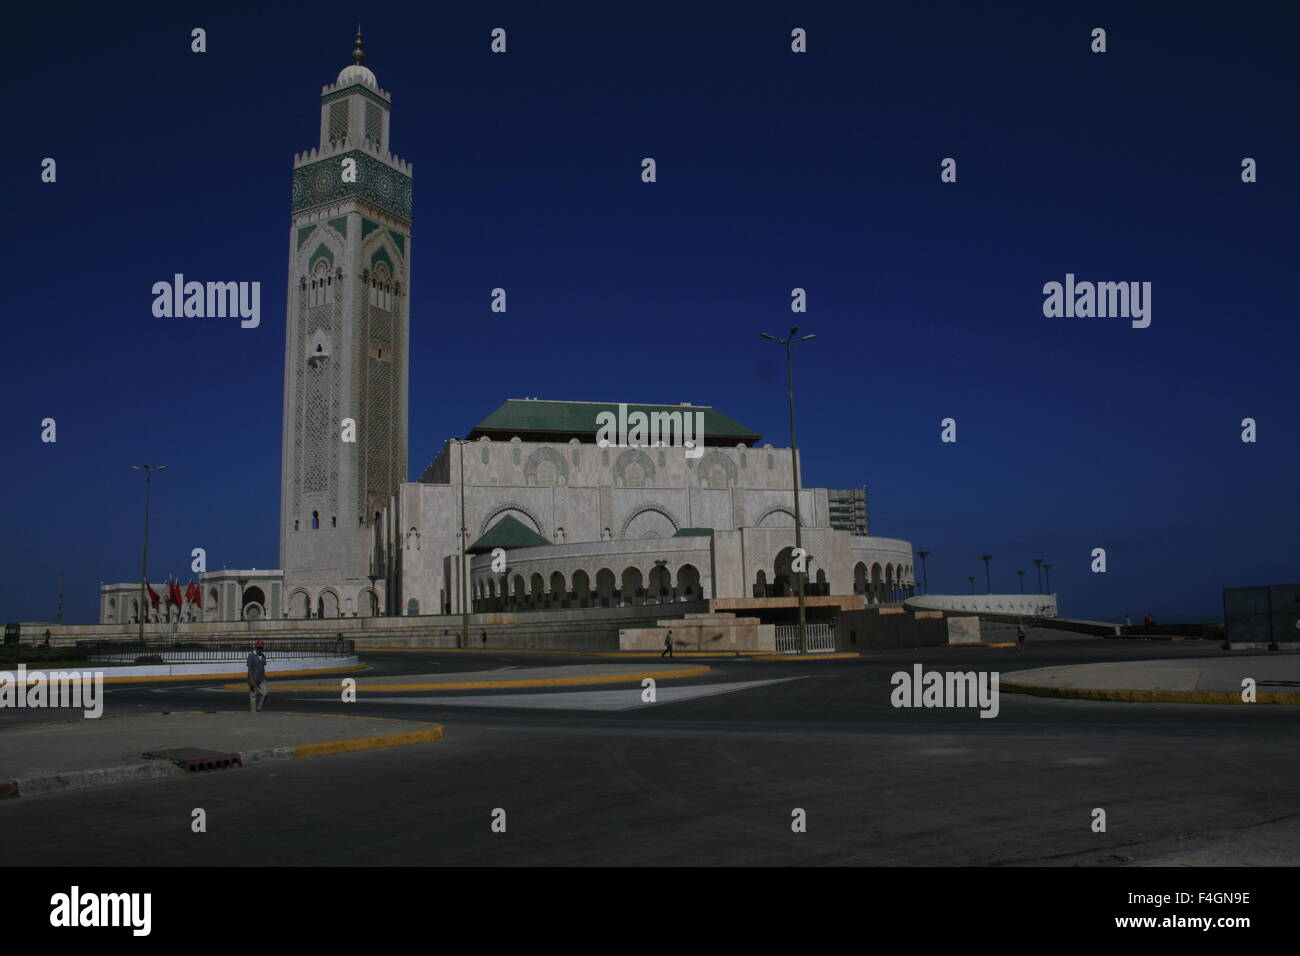 The hassan ii mosque or grande mosqu e hassan ii in for Mosquee hassan 2 architecture